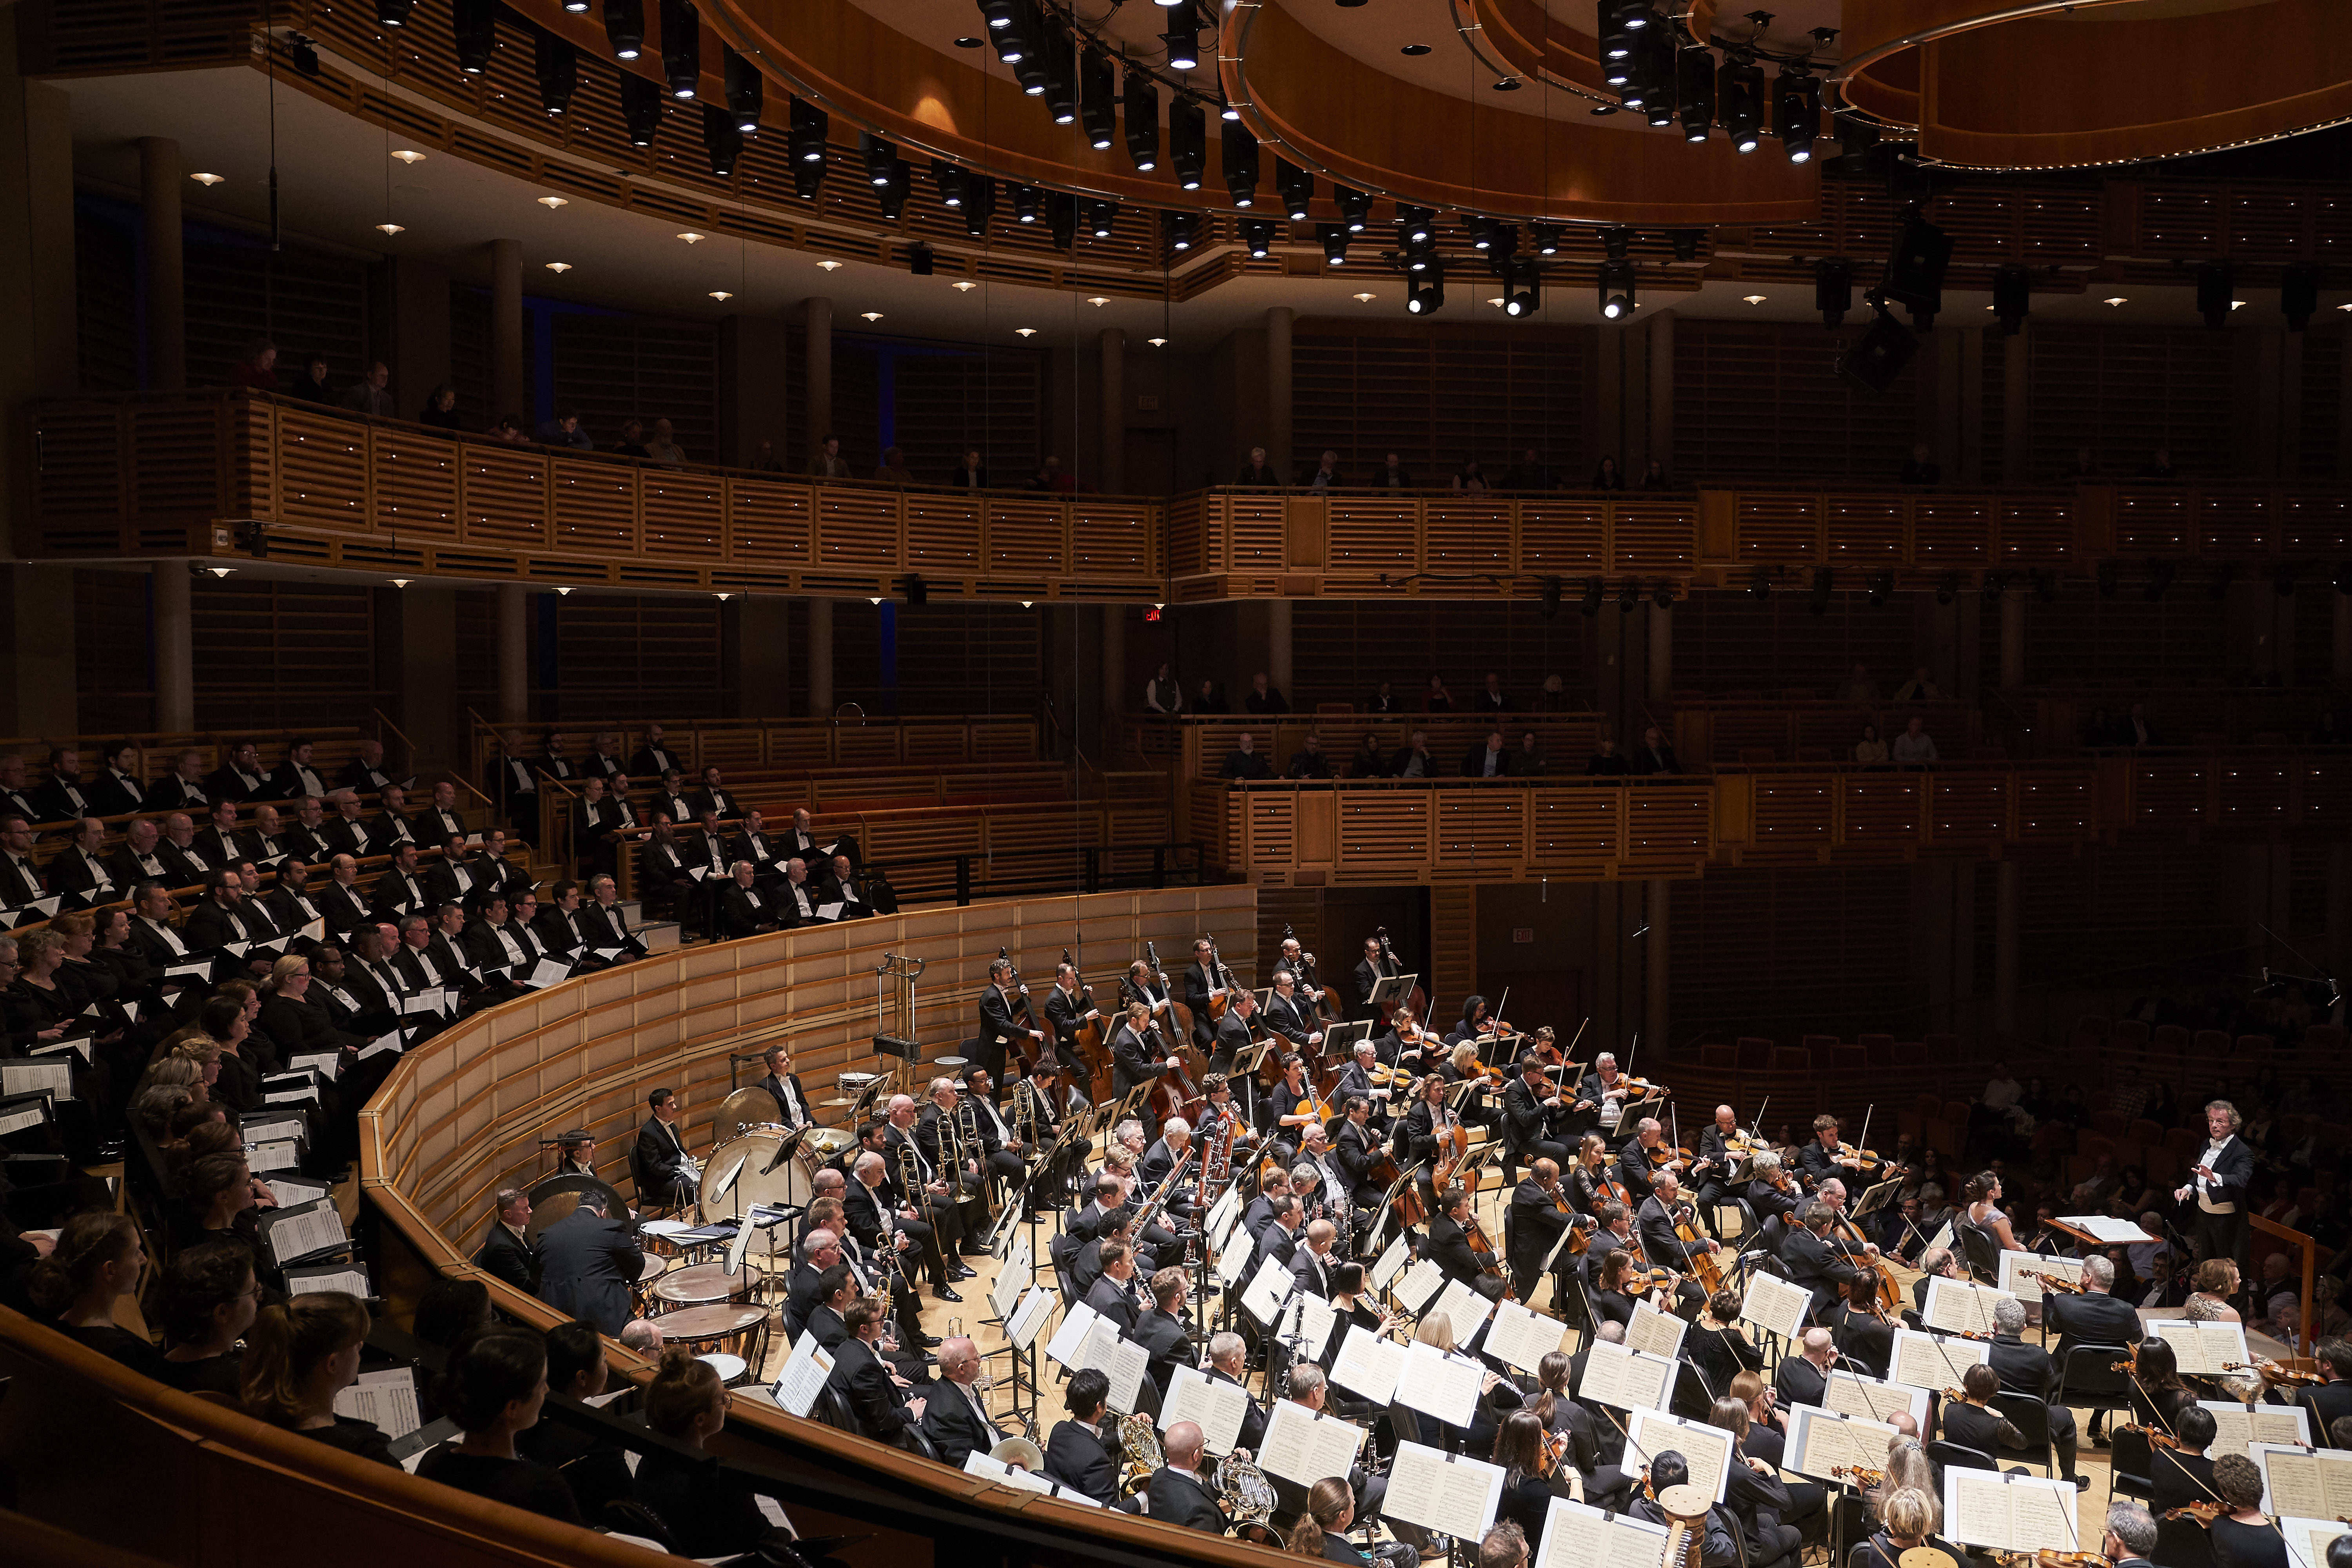 The Cleveland Orchestra in Miami